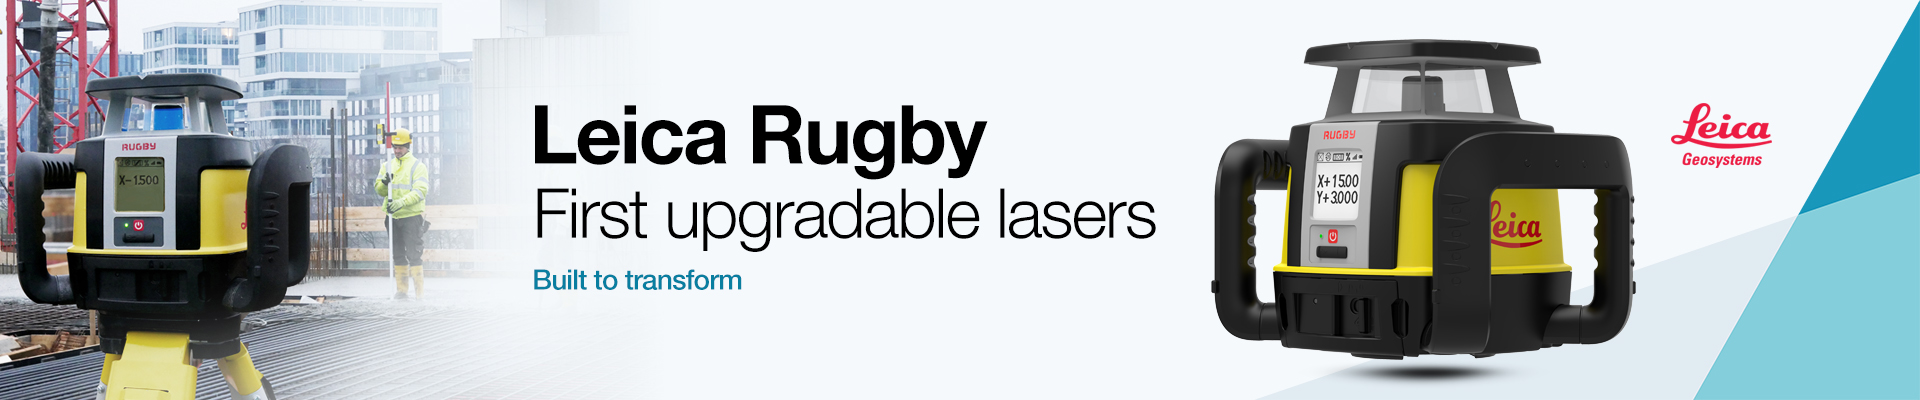 Leica Rugby Upgradable Lasers